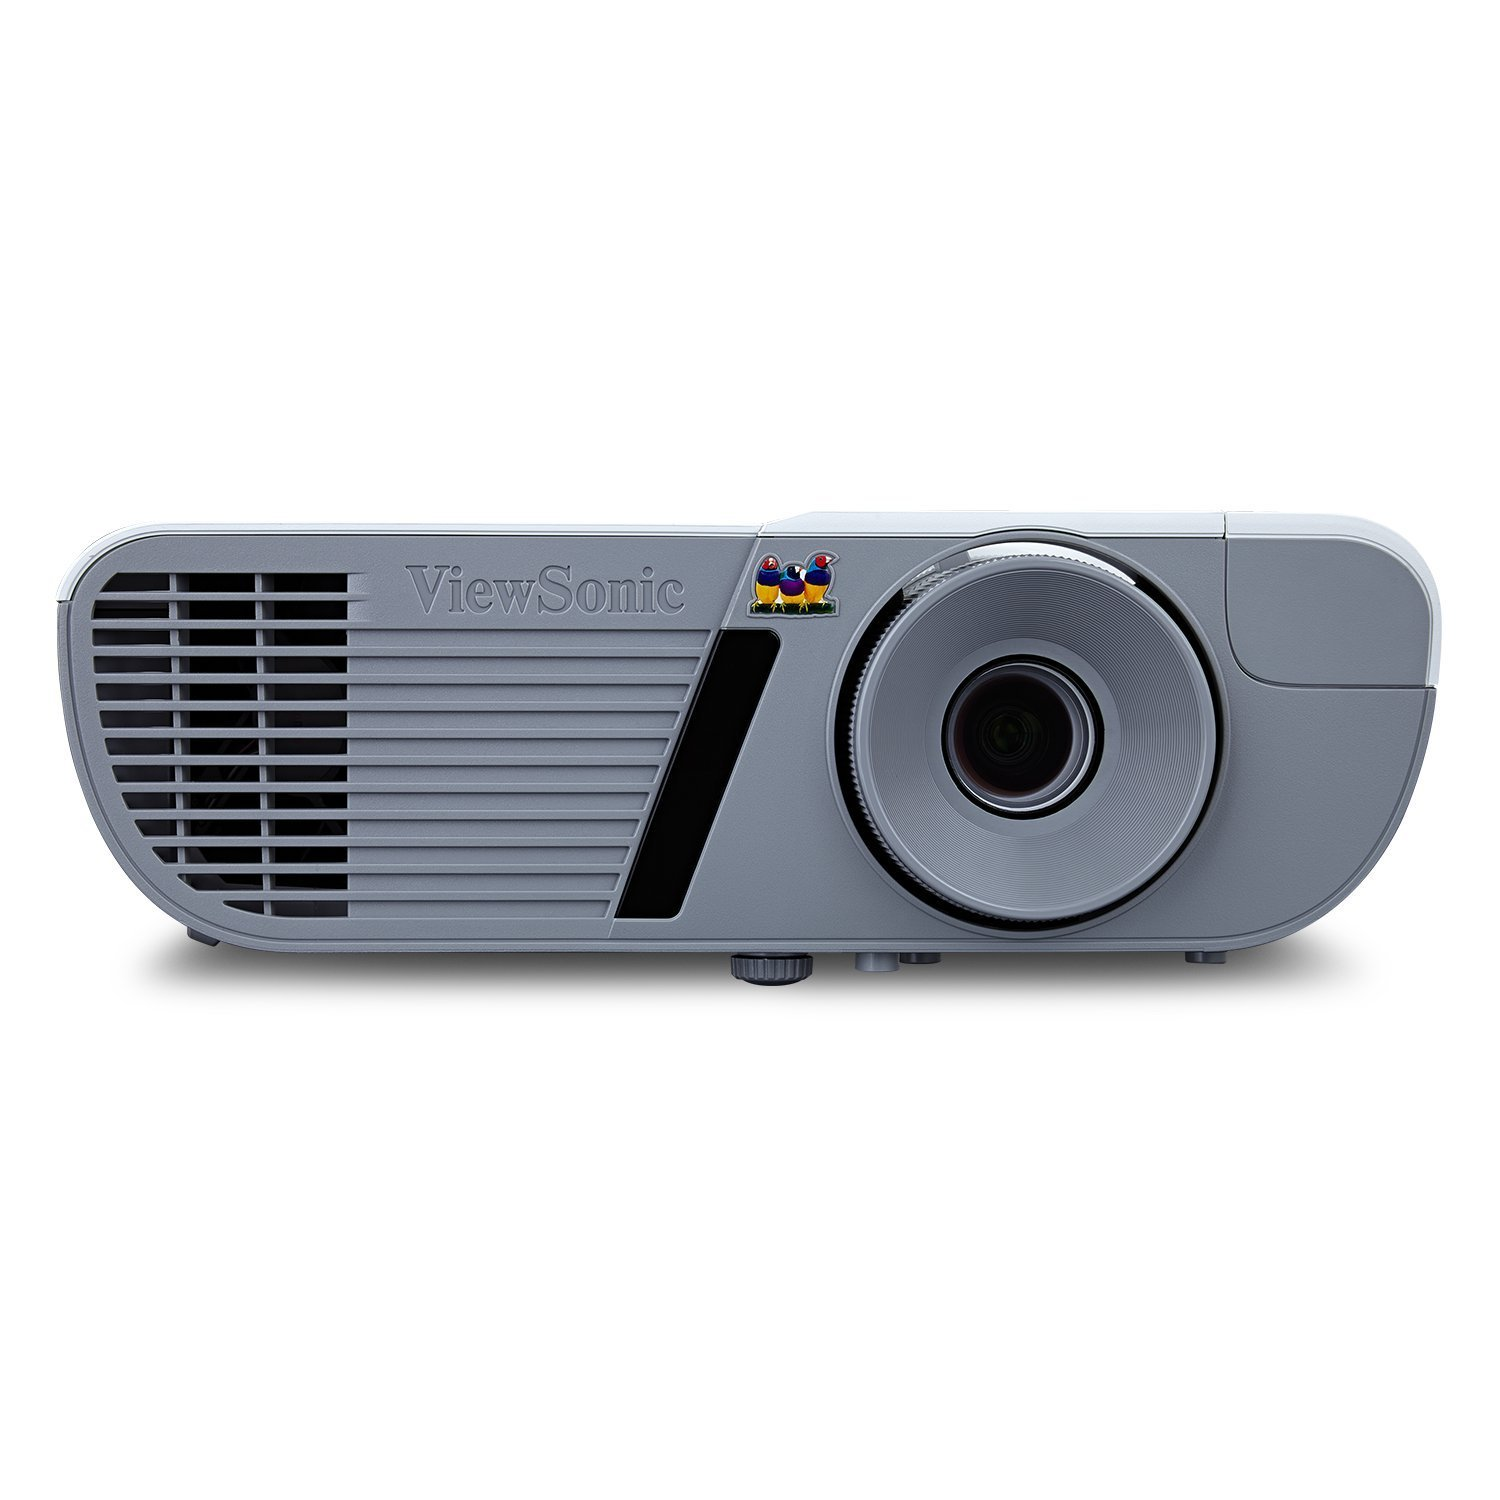 VIEWSONIC PJL9371 PROJECTOR STANDARD MONITOR DRIVER DOWNLOAD (2019)